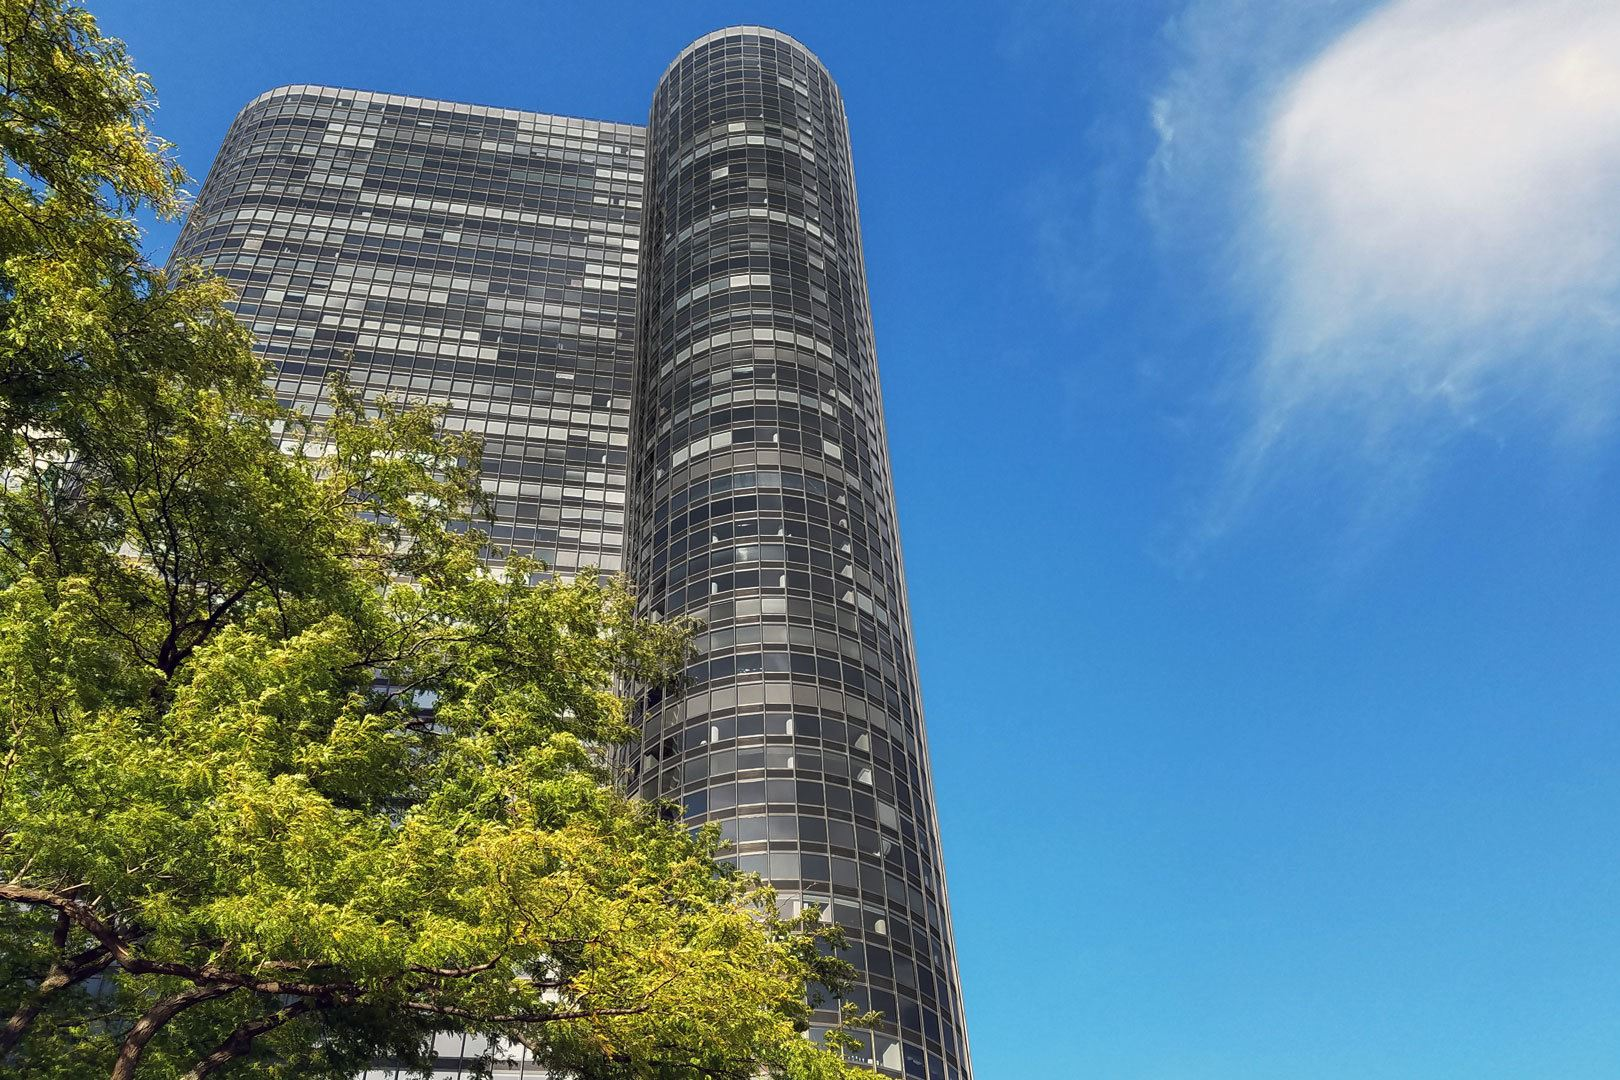 155 N HARBOR Drive #305, Chicago, IL 60601 - MLS#: 10609278